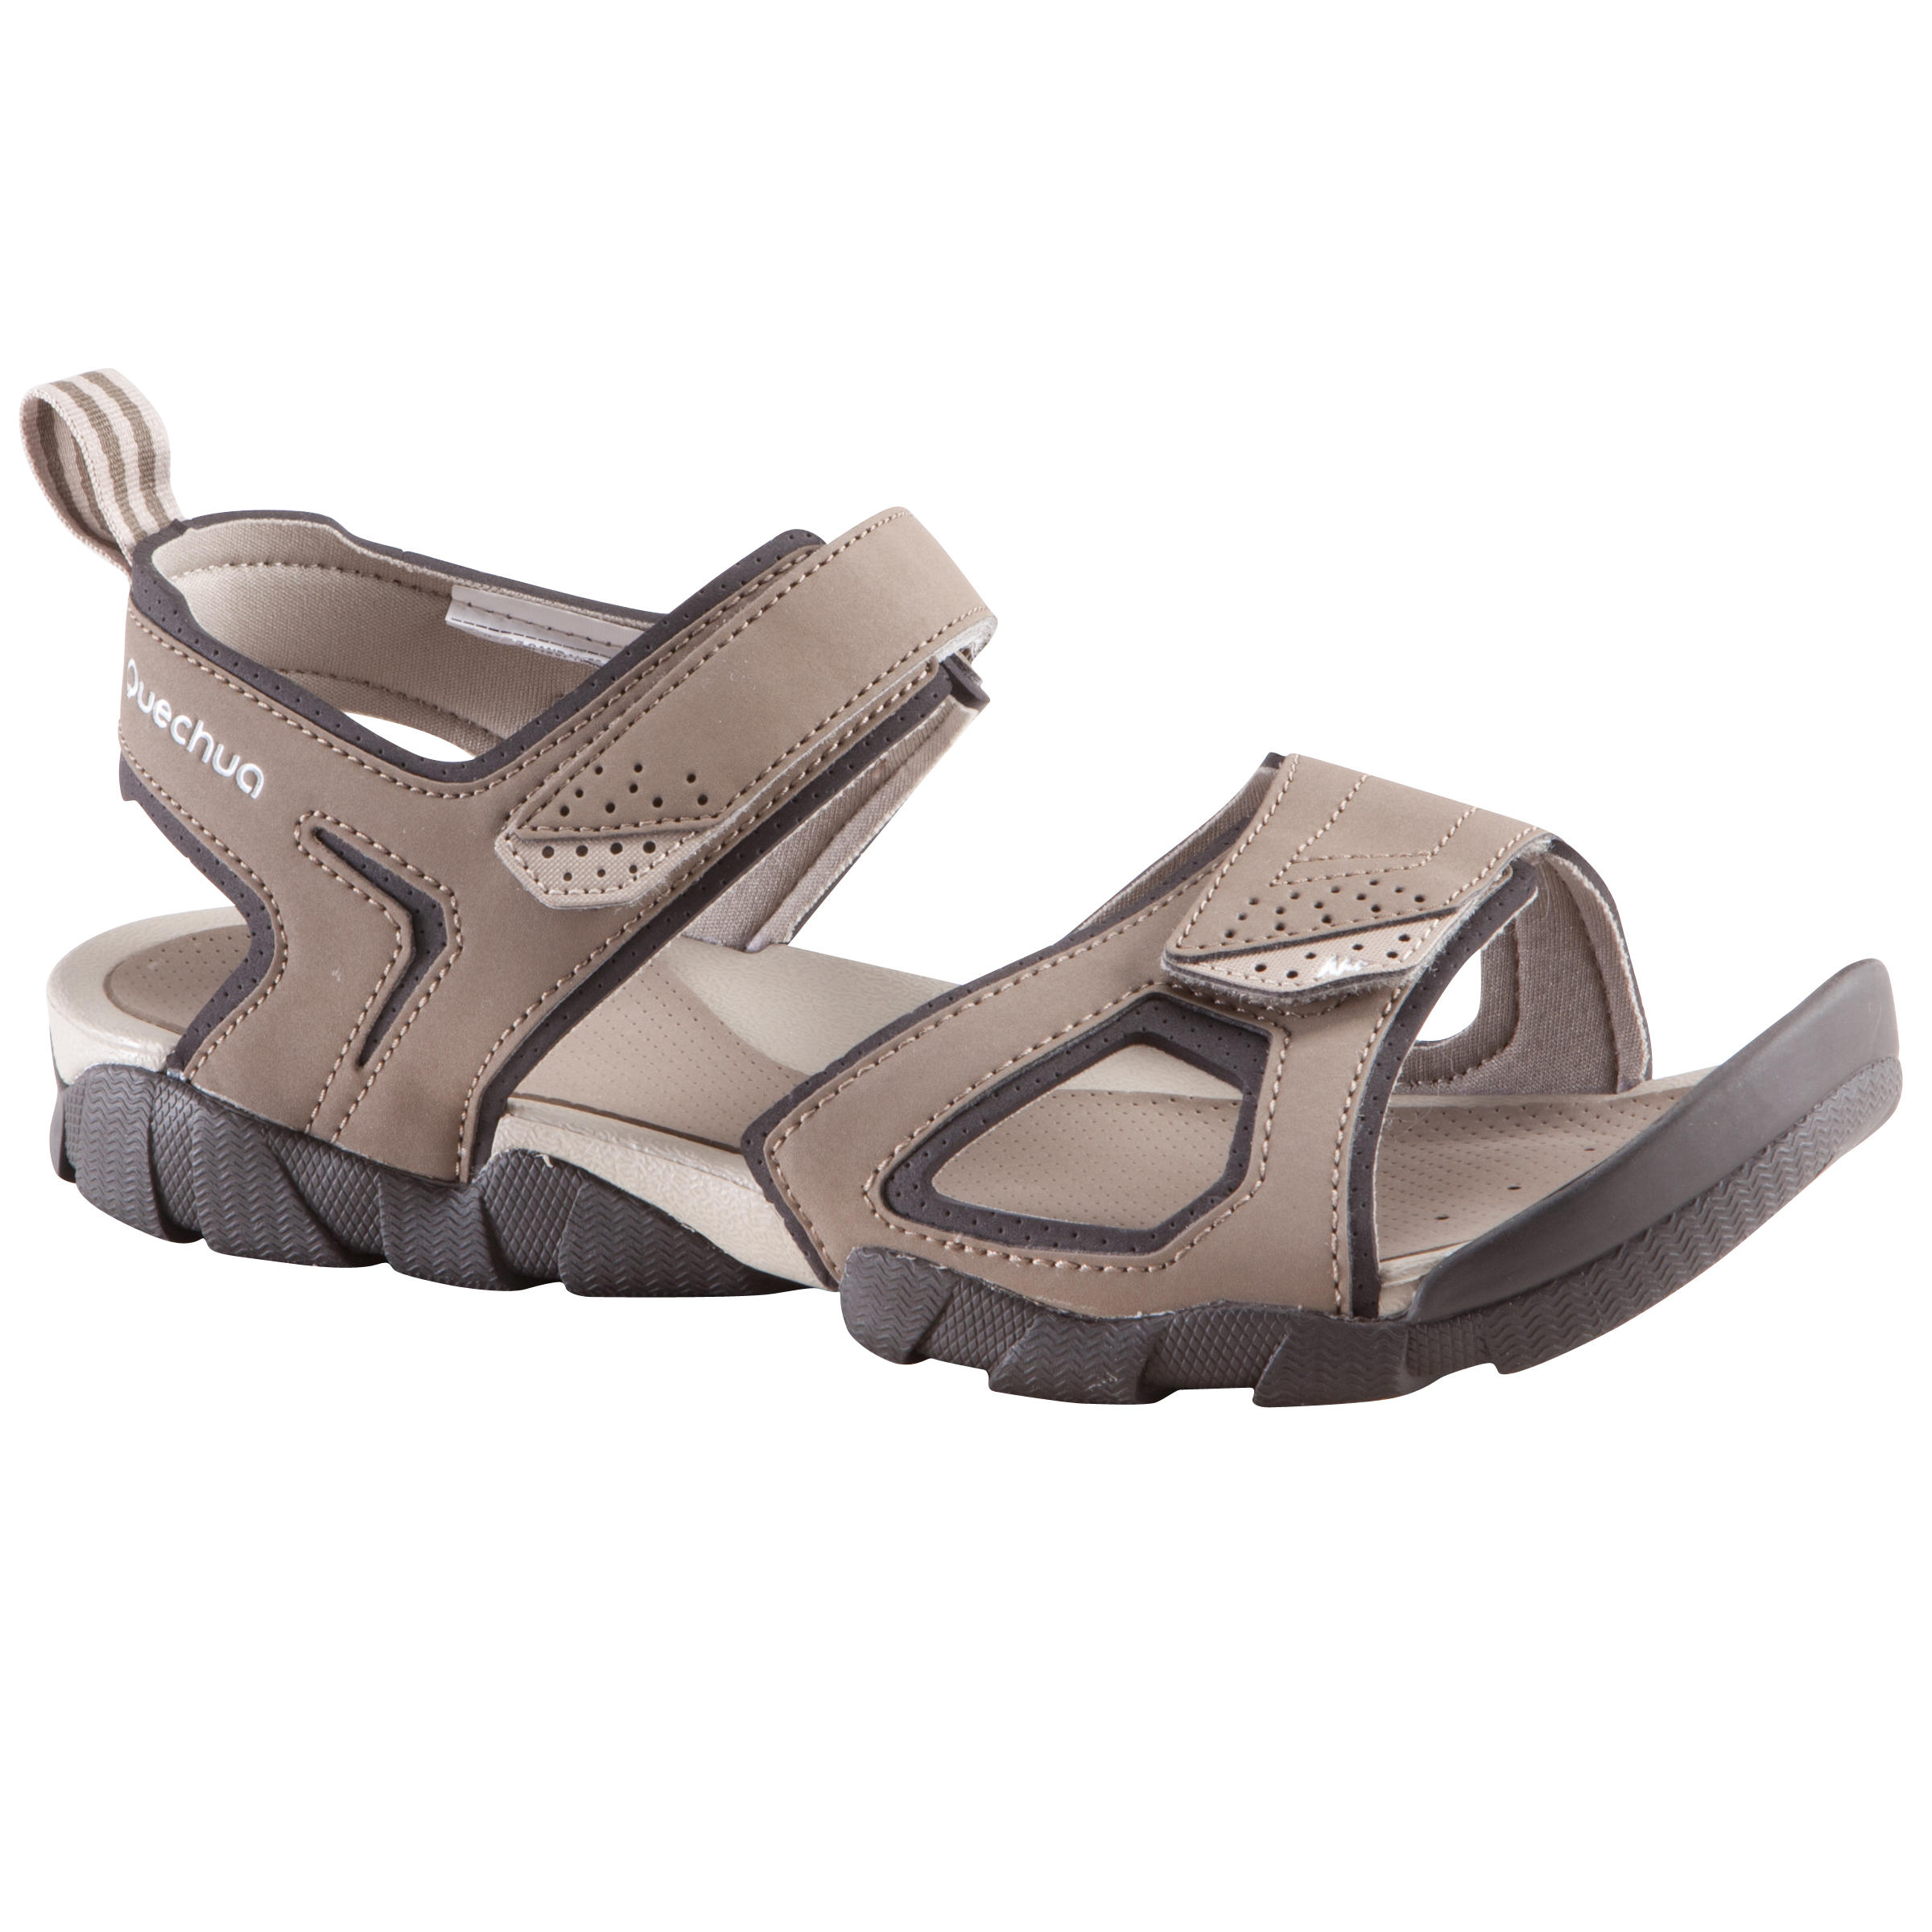 Men's Arpenaz 50 Hiking Sandals - Beige